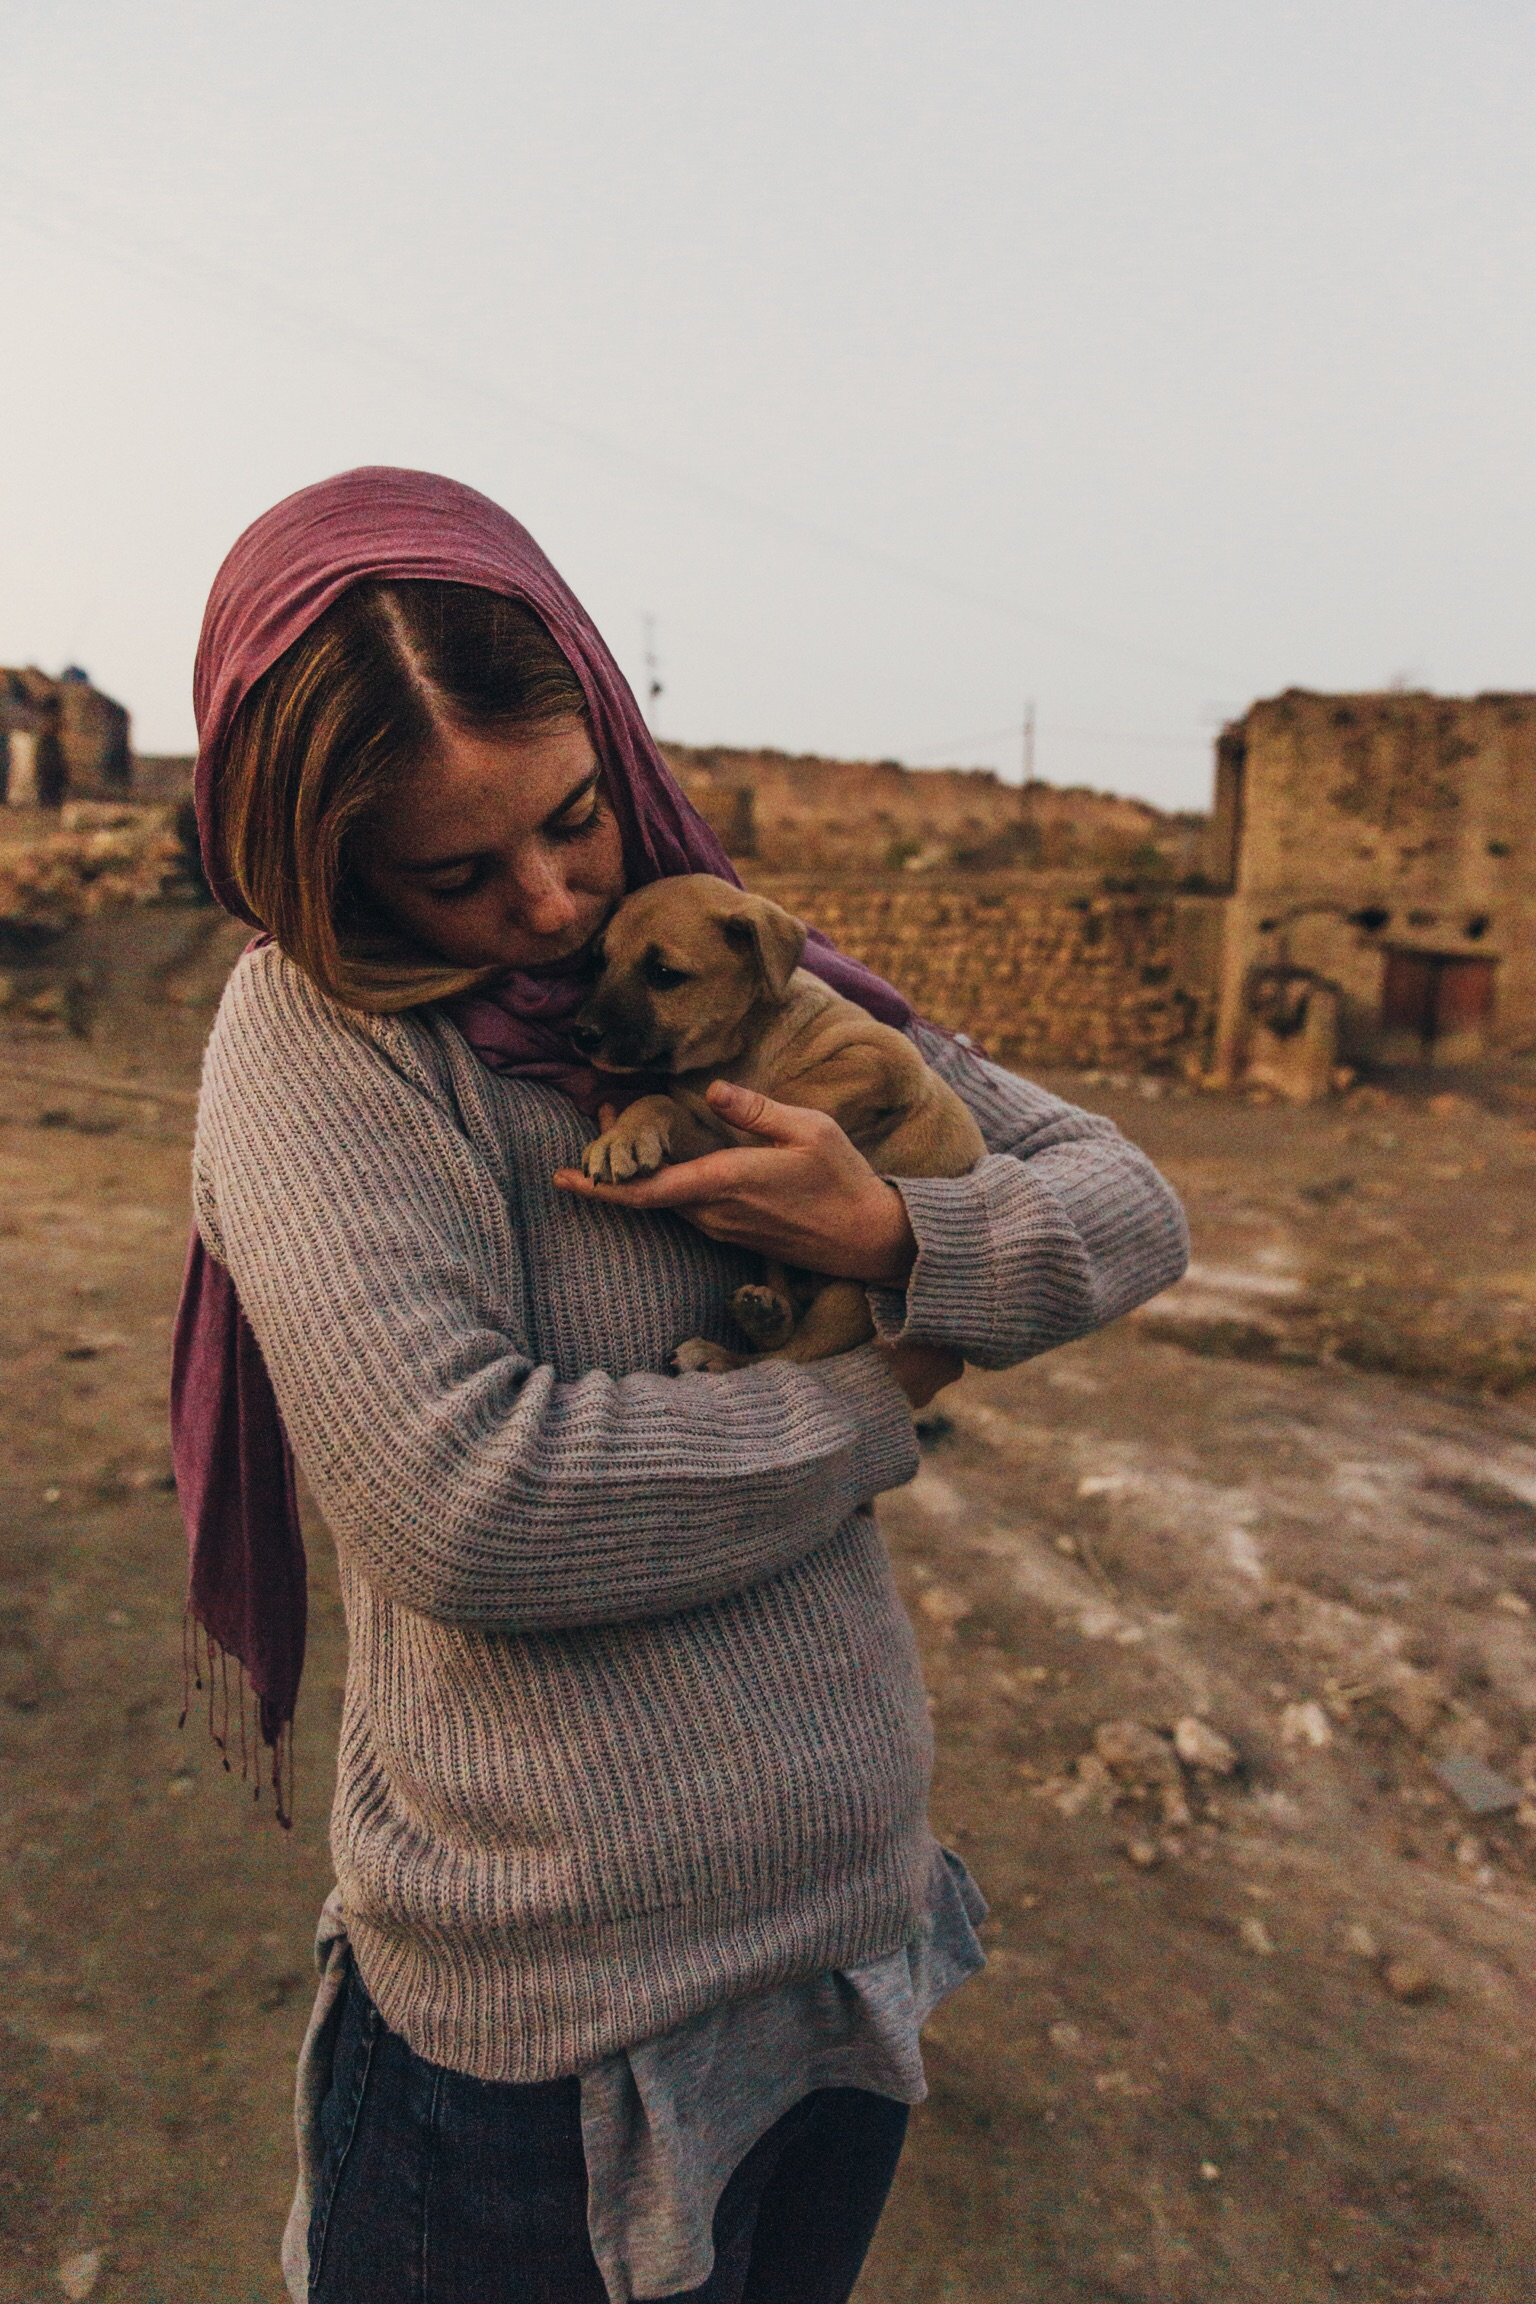 Freya & a new friend she found while on assignment in Lahore, Pakistan (yes, we'd want to steal them too)